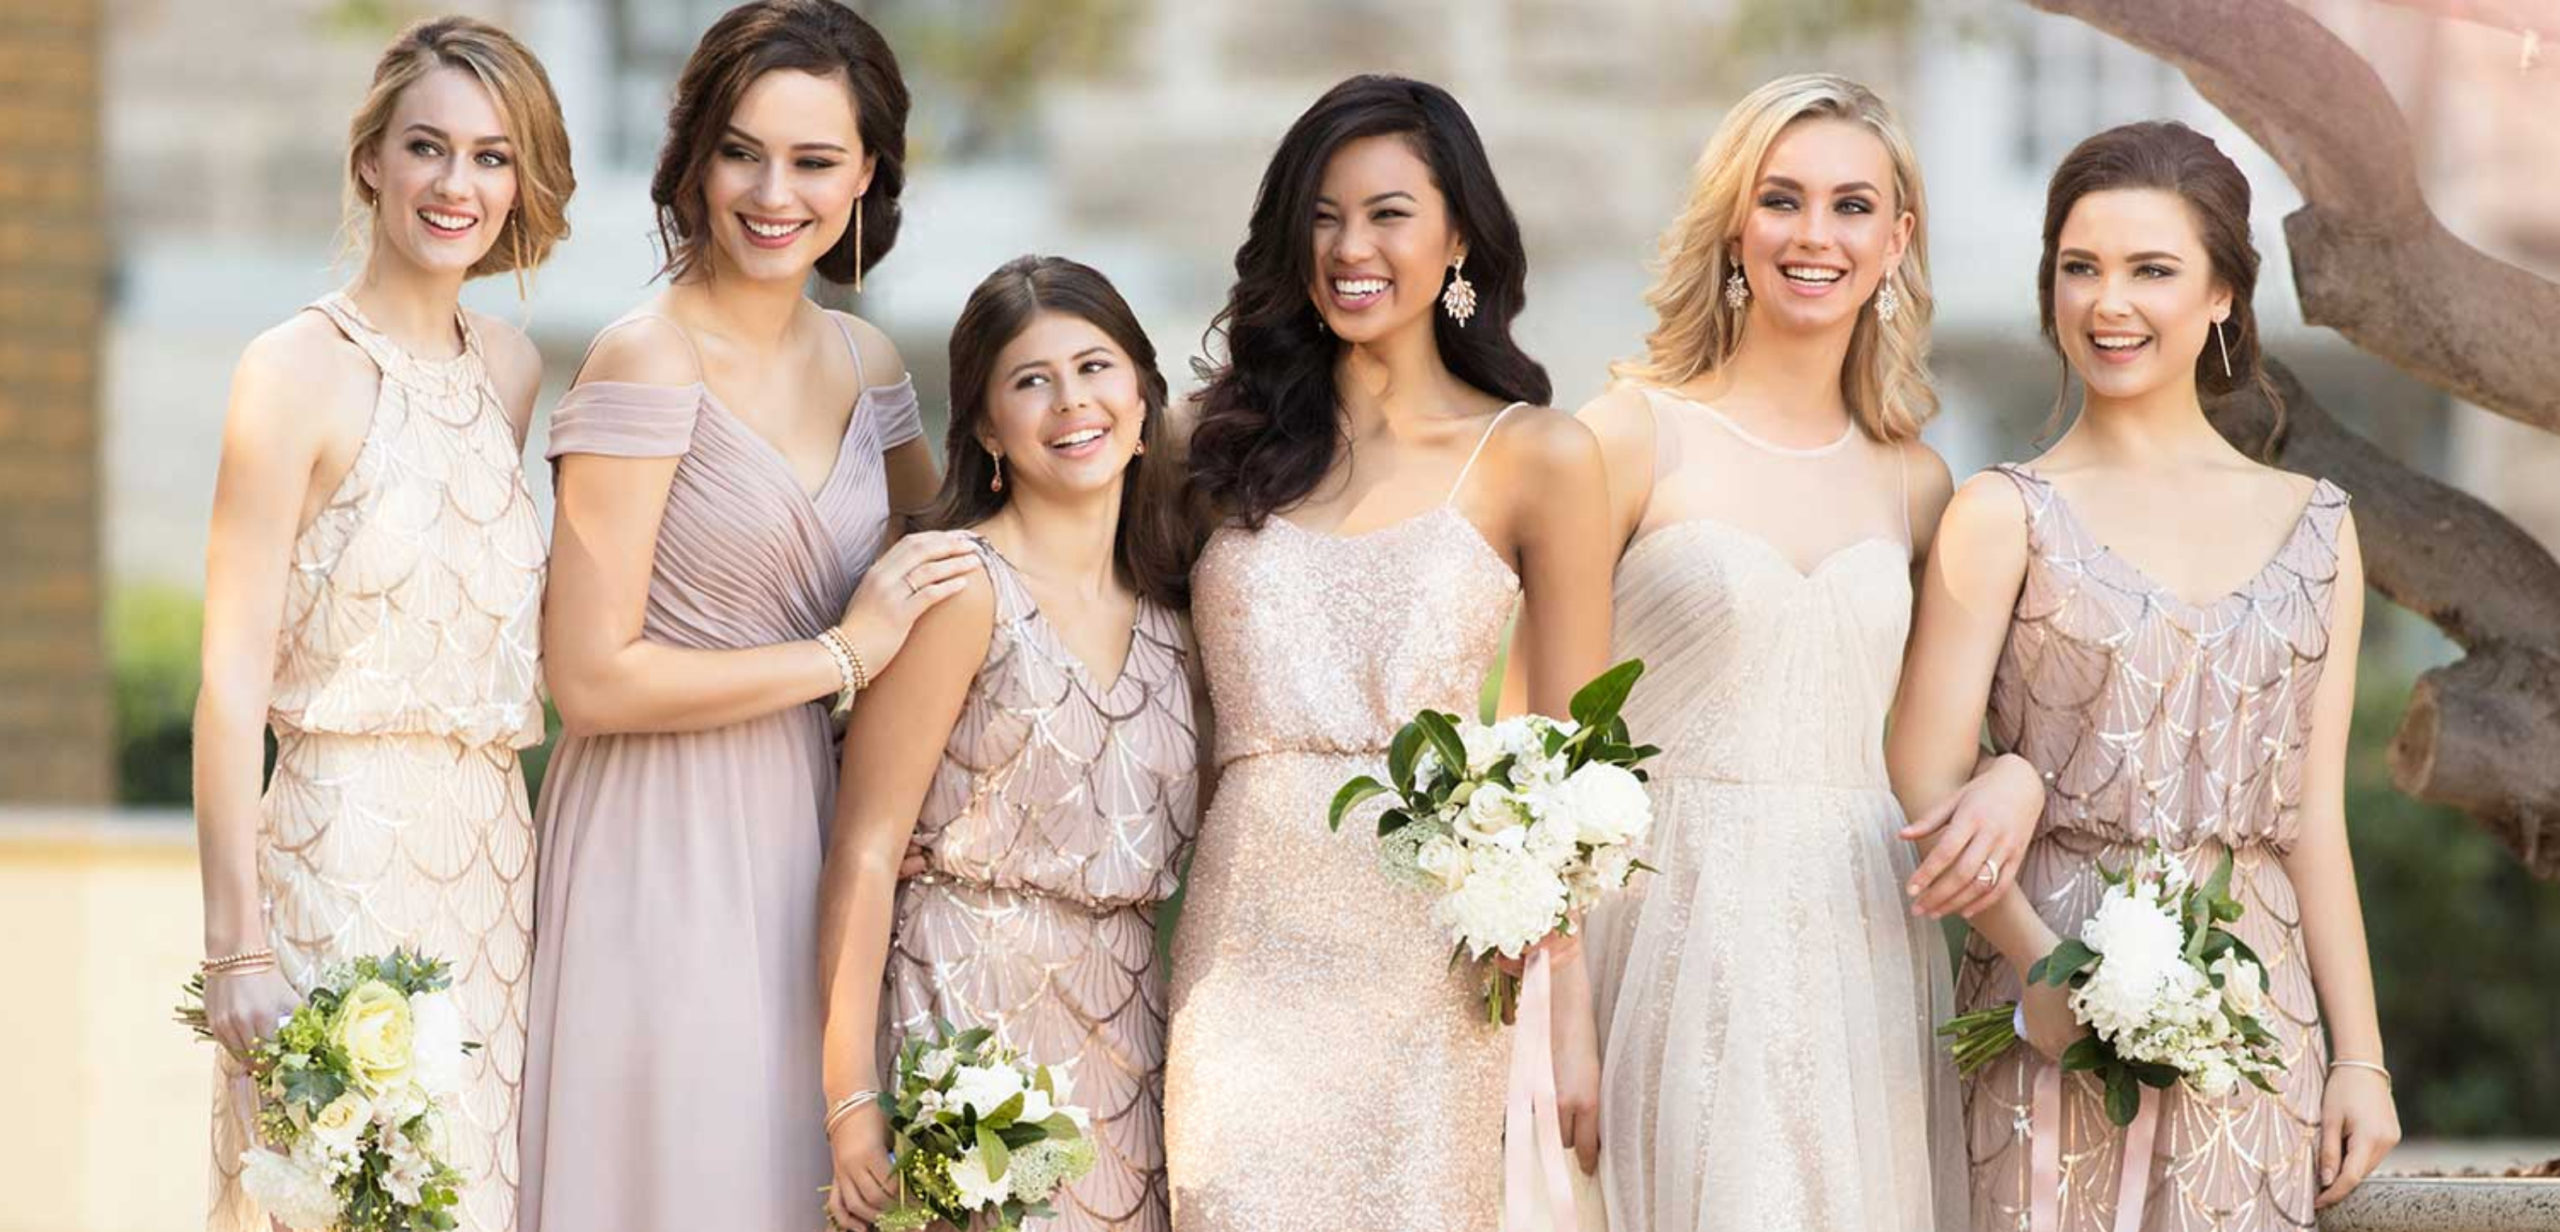 michiana bridesmaid dresses